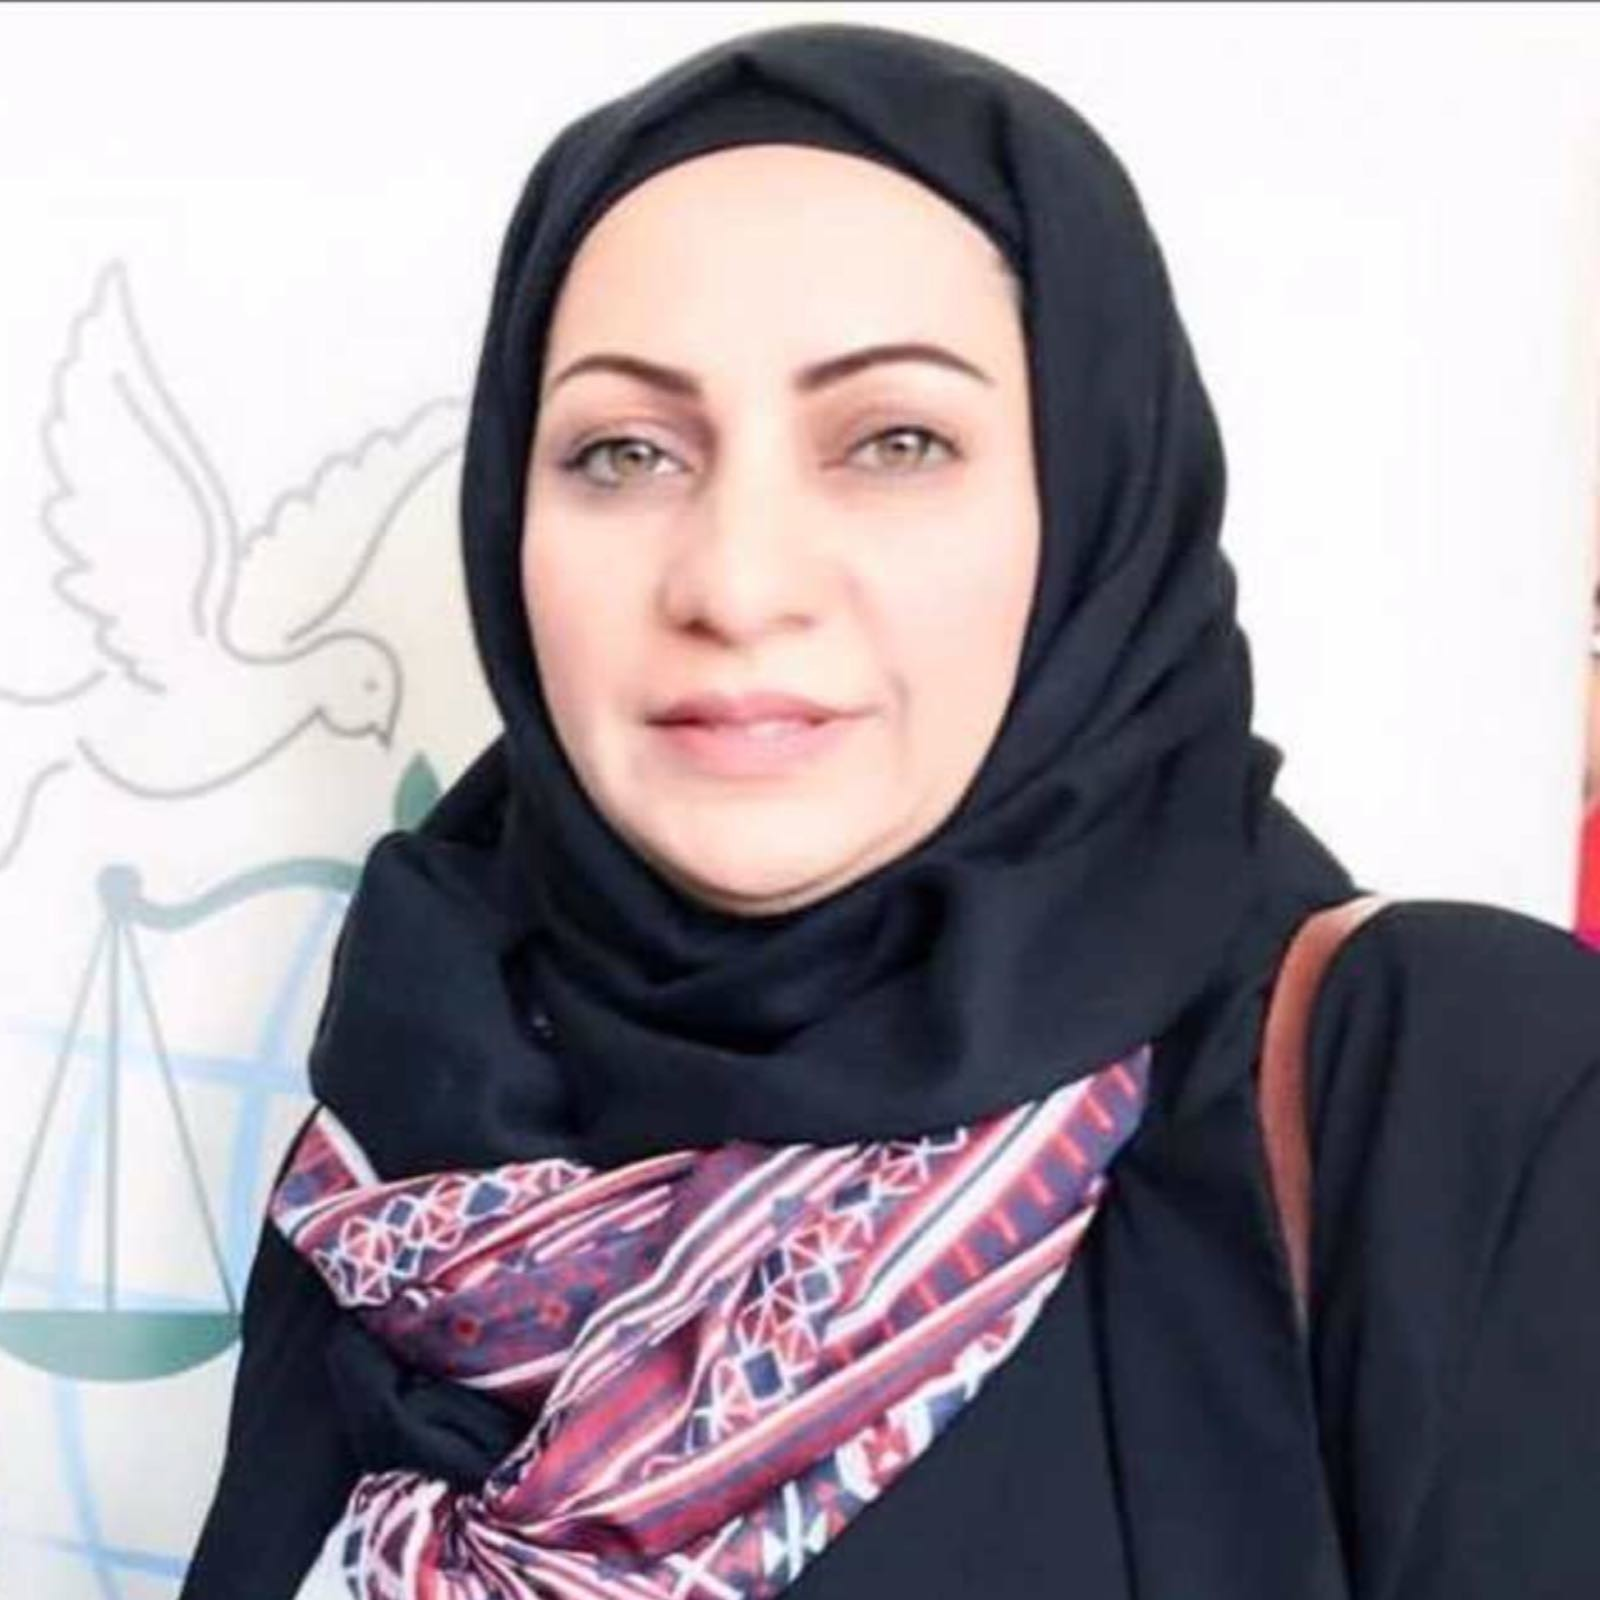 Bahrain: Human rights defender charged with terrorism